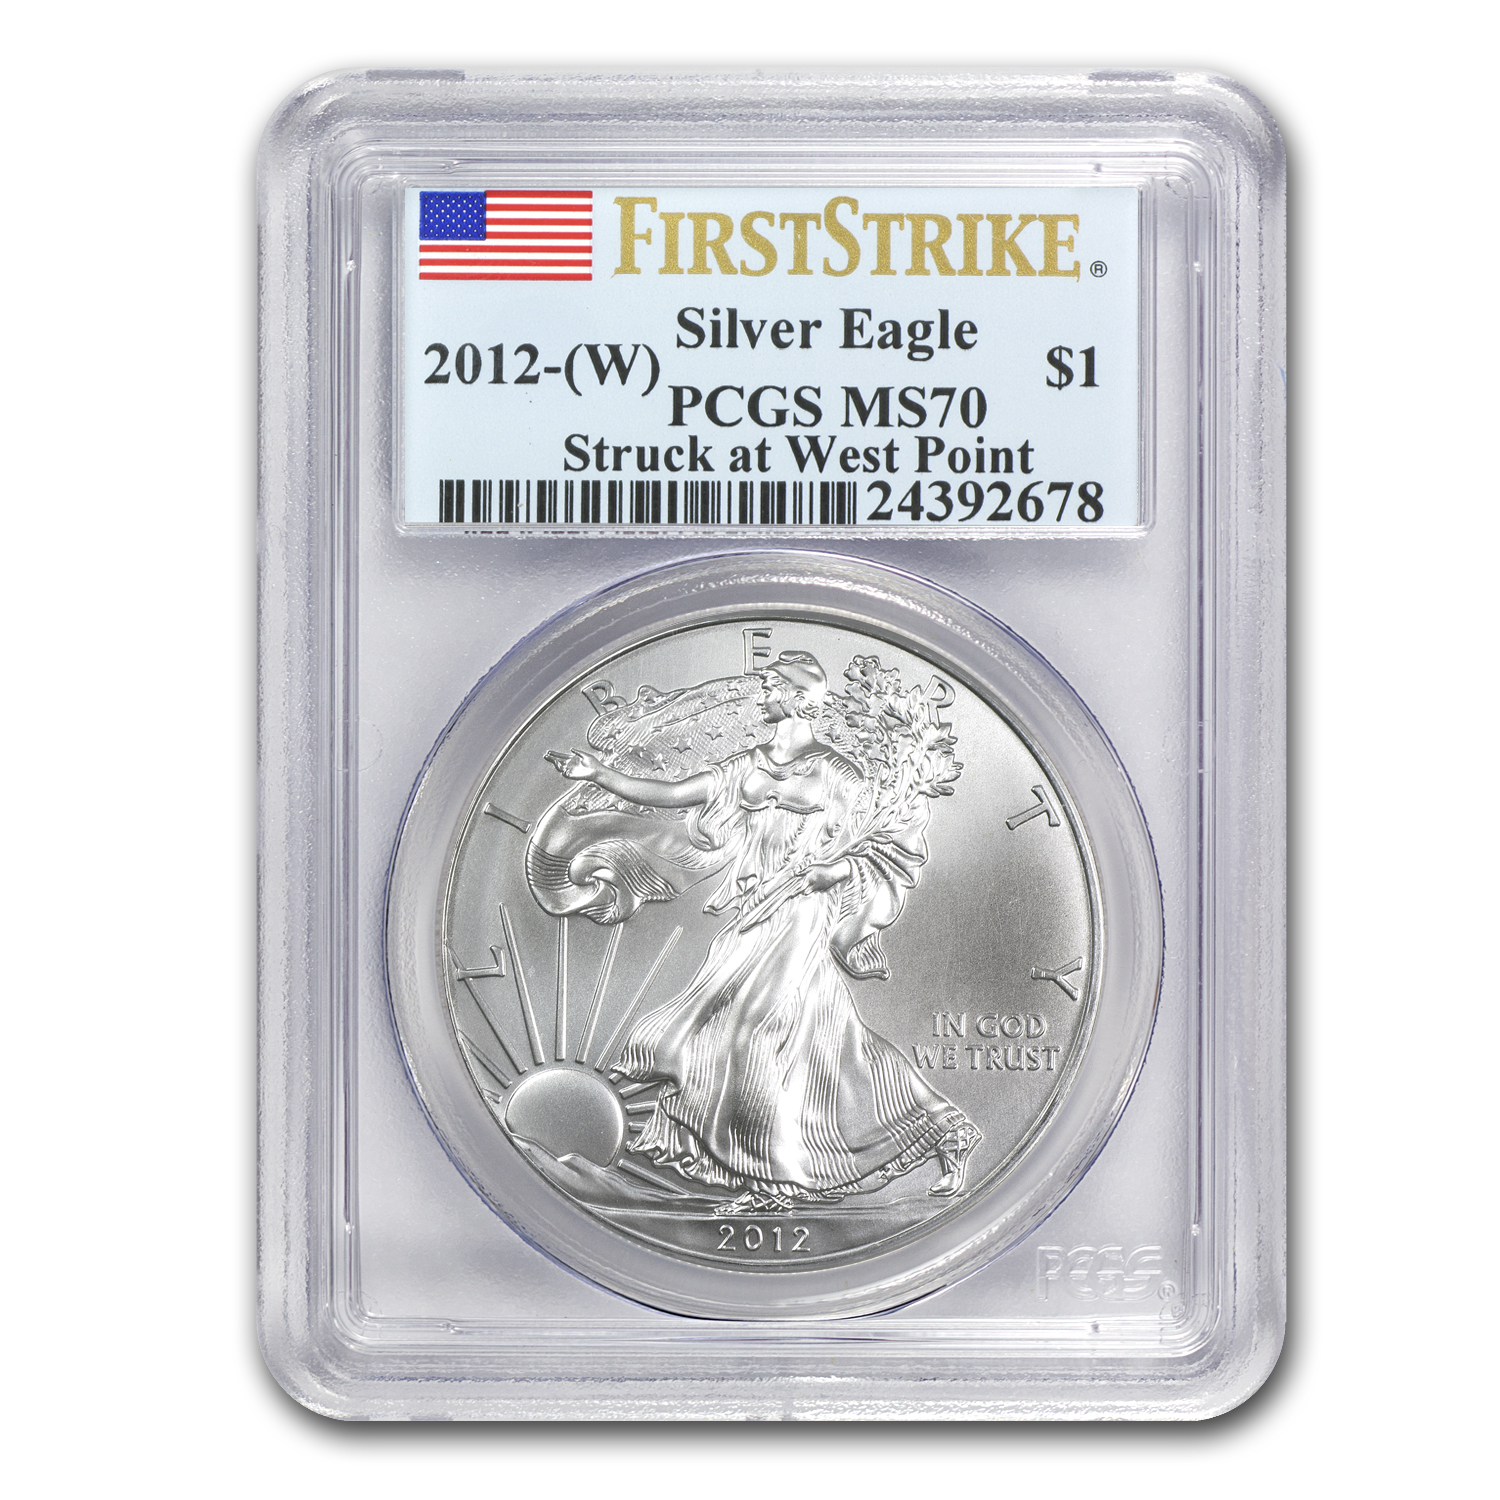 2012 (W) Silver American Eagle - MS-70 PCGS - First Strike